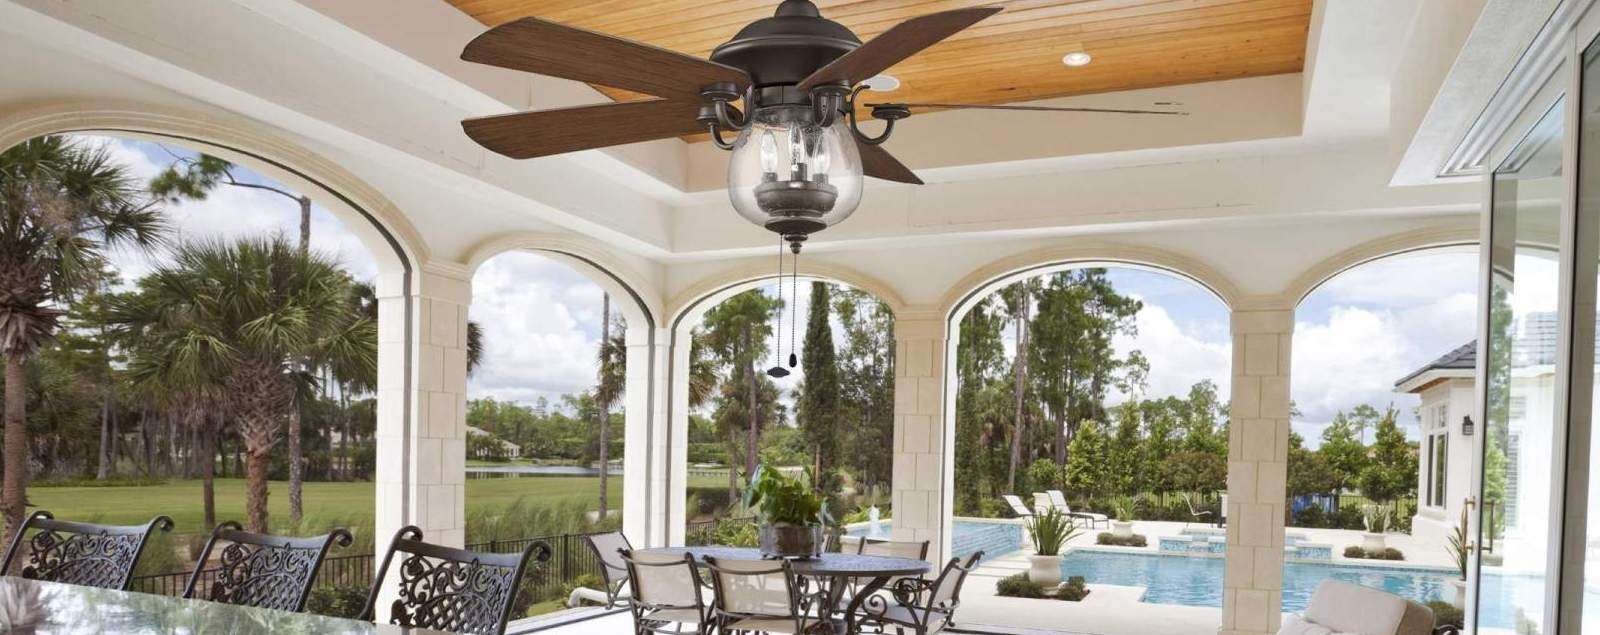 Heavy Duty Outdoor Ceiling Fans With Regard To Most Recent Outdoor Ceiling Fans – Shop Wet, Dry, And Damp Rated Outdoor Fans (View 3 of 20)